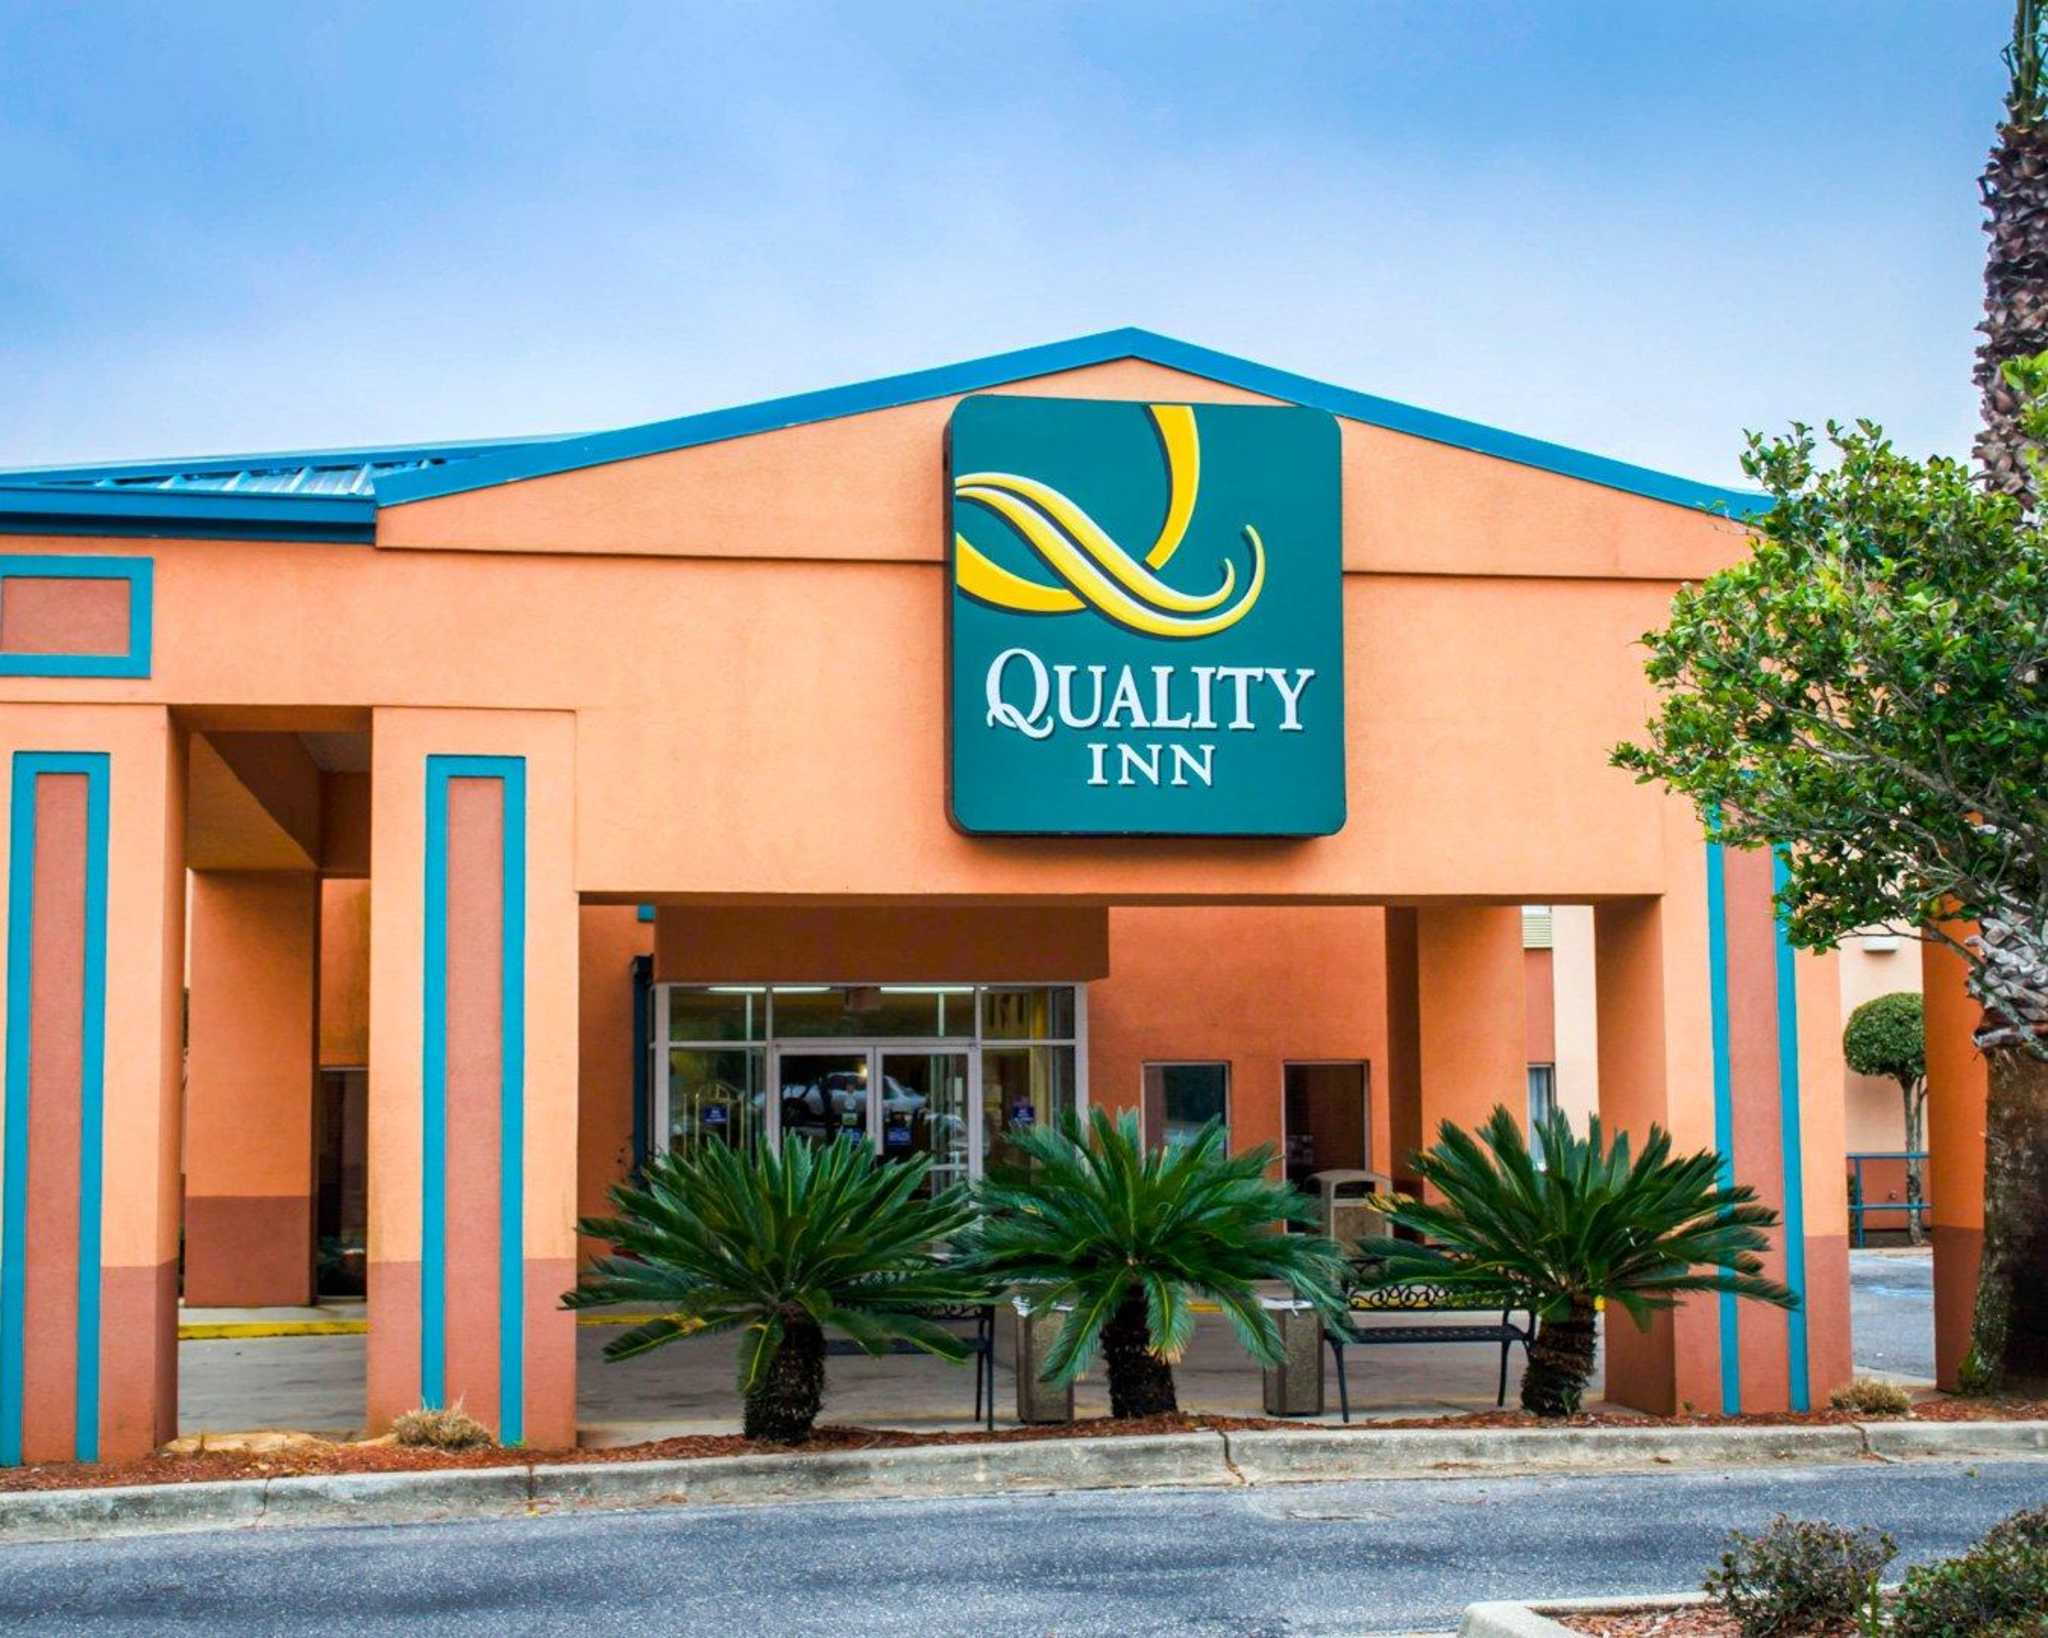 Quality inn in pensacola fl 850 476 8 for Quality hotel